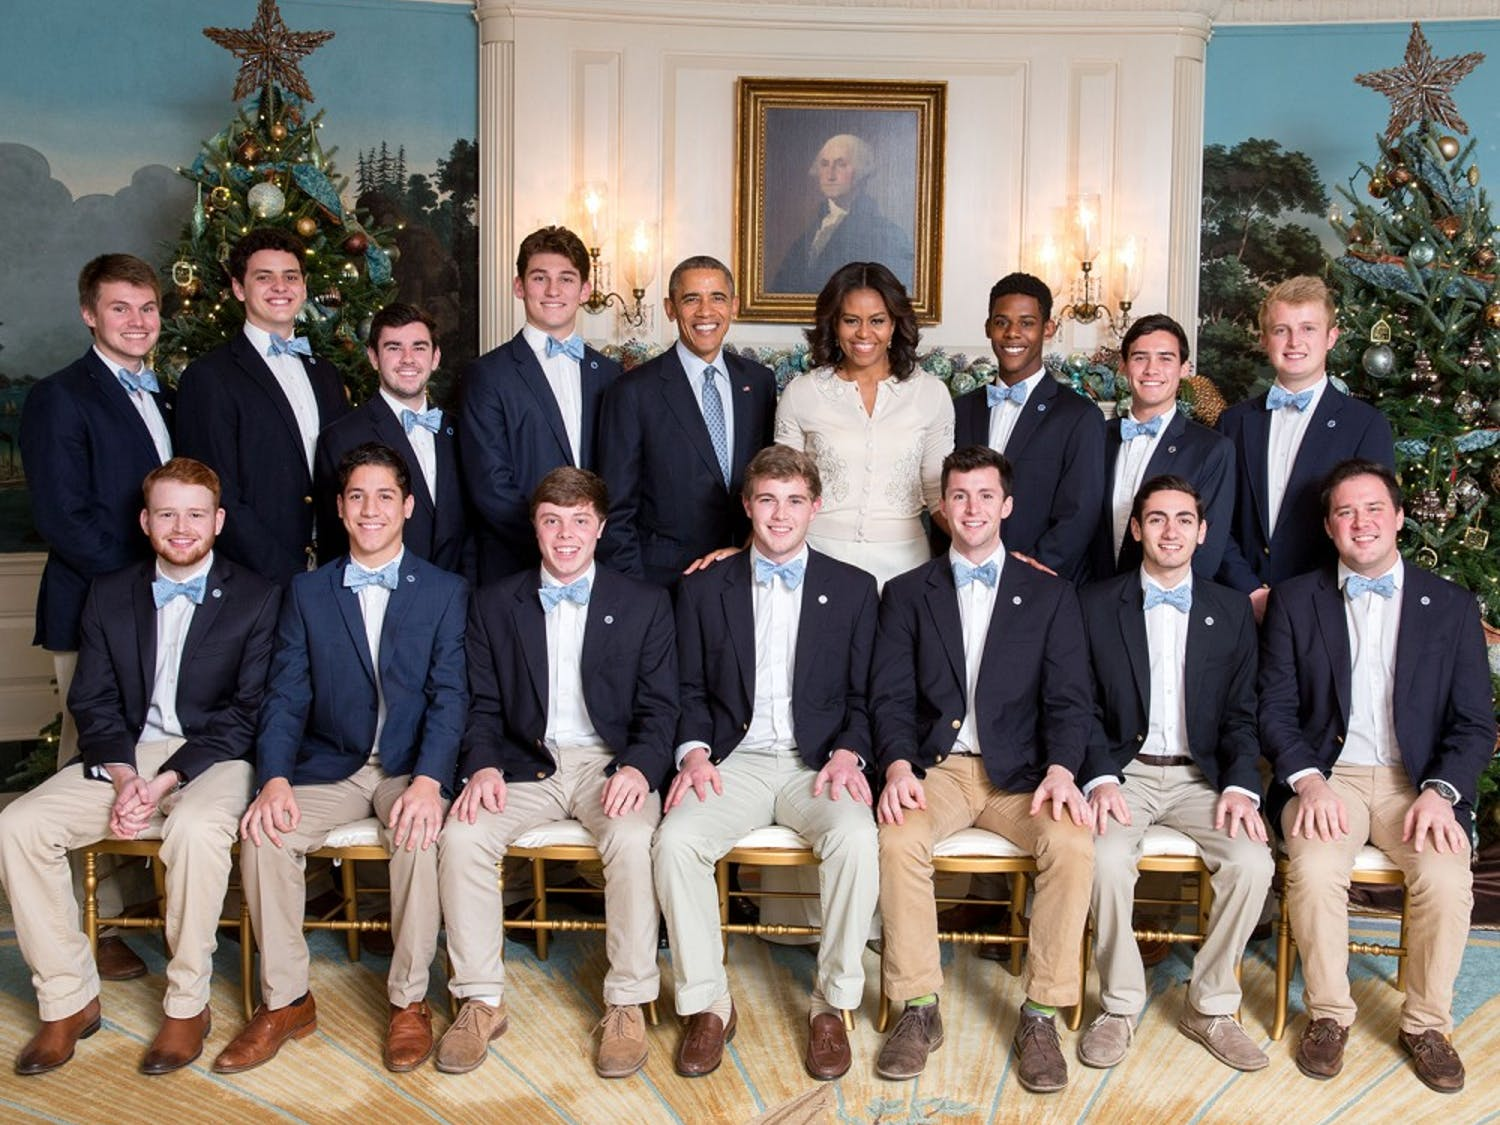 President Barack Obama and First Lady Michelle Obama join the UNC (University of North Carolina) Clef Hangers for a group photo and listen to them perform in the Diplomatic Reception Room prior to Christmas holiday EOP Reception #1 at the White House, Dec. 15, 2015. (Official White House Photo by Chuck Kennedy)This photograph is provided by THE WHITE HOUSE as a courtesy and may be printed by the subject(s) in the photograph for personal use only. The photograph may not be manipulated in any way and may not otherwise be reproduced, disseminated or broadcast, without the written permission of the White House Photo Office. This photograph may not be used in any commercial or political materials, advertisements, emails, products, promotions that in any way suggests approval or endorsement of the President, the First Family, or the White House.